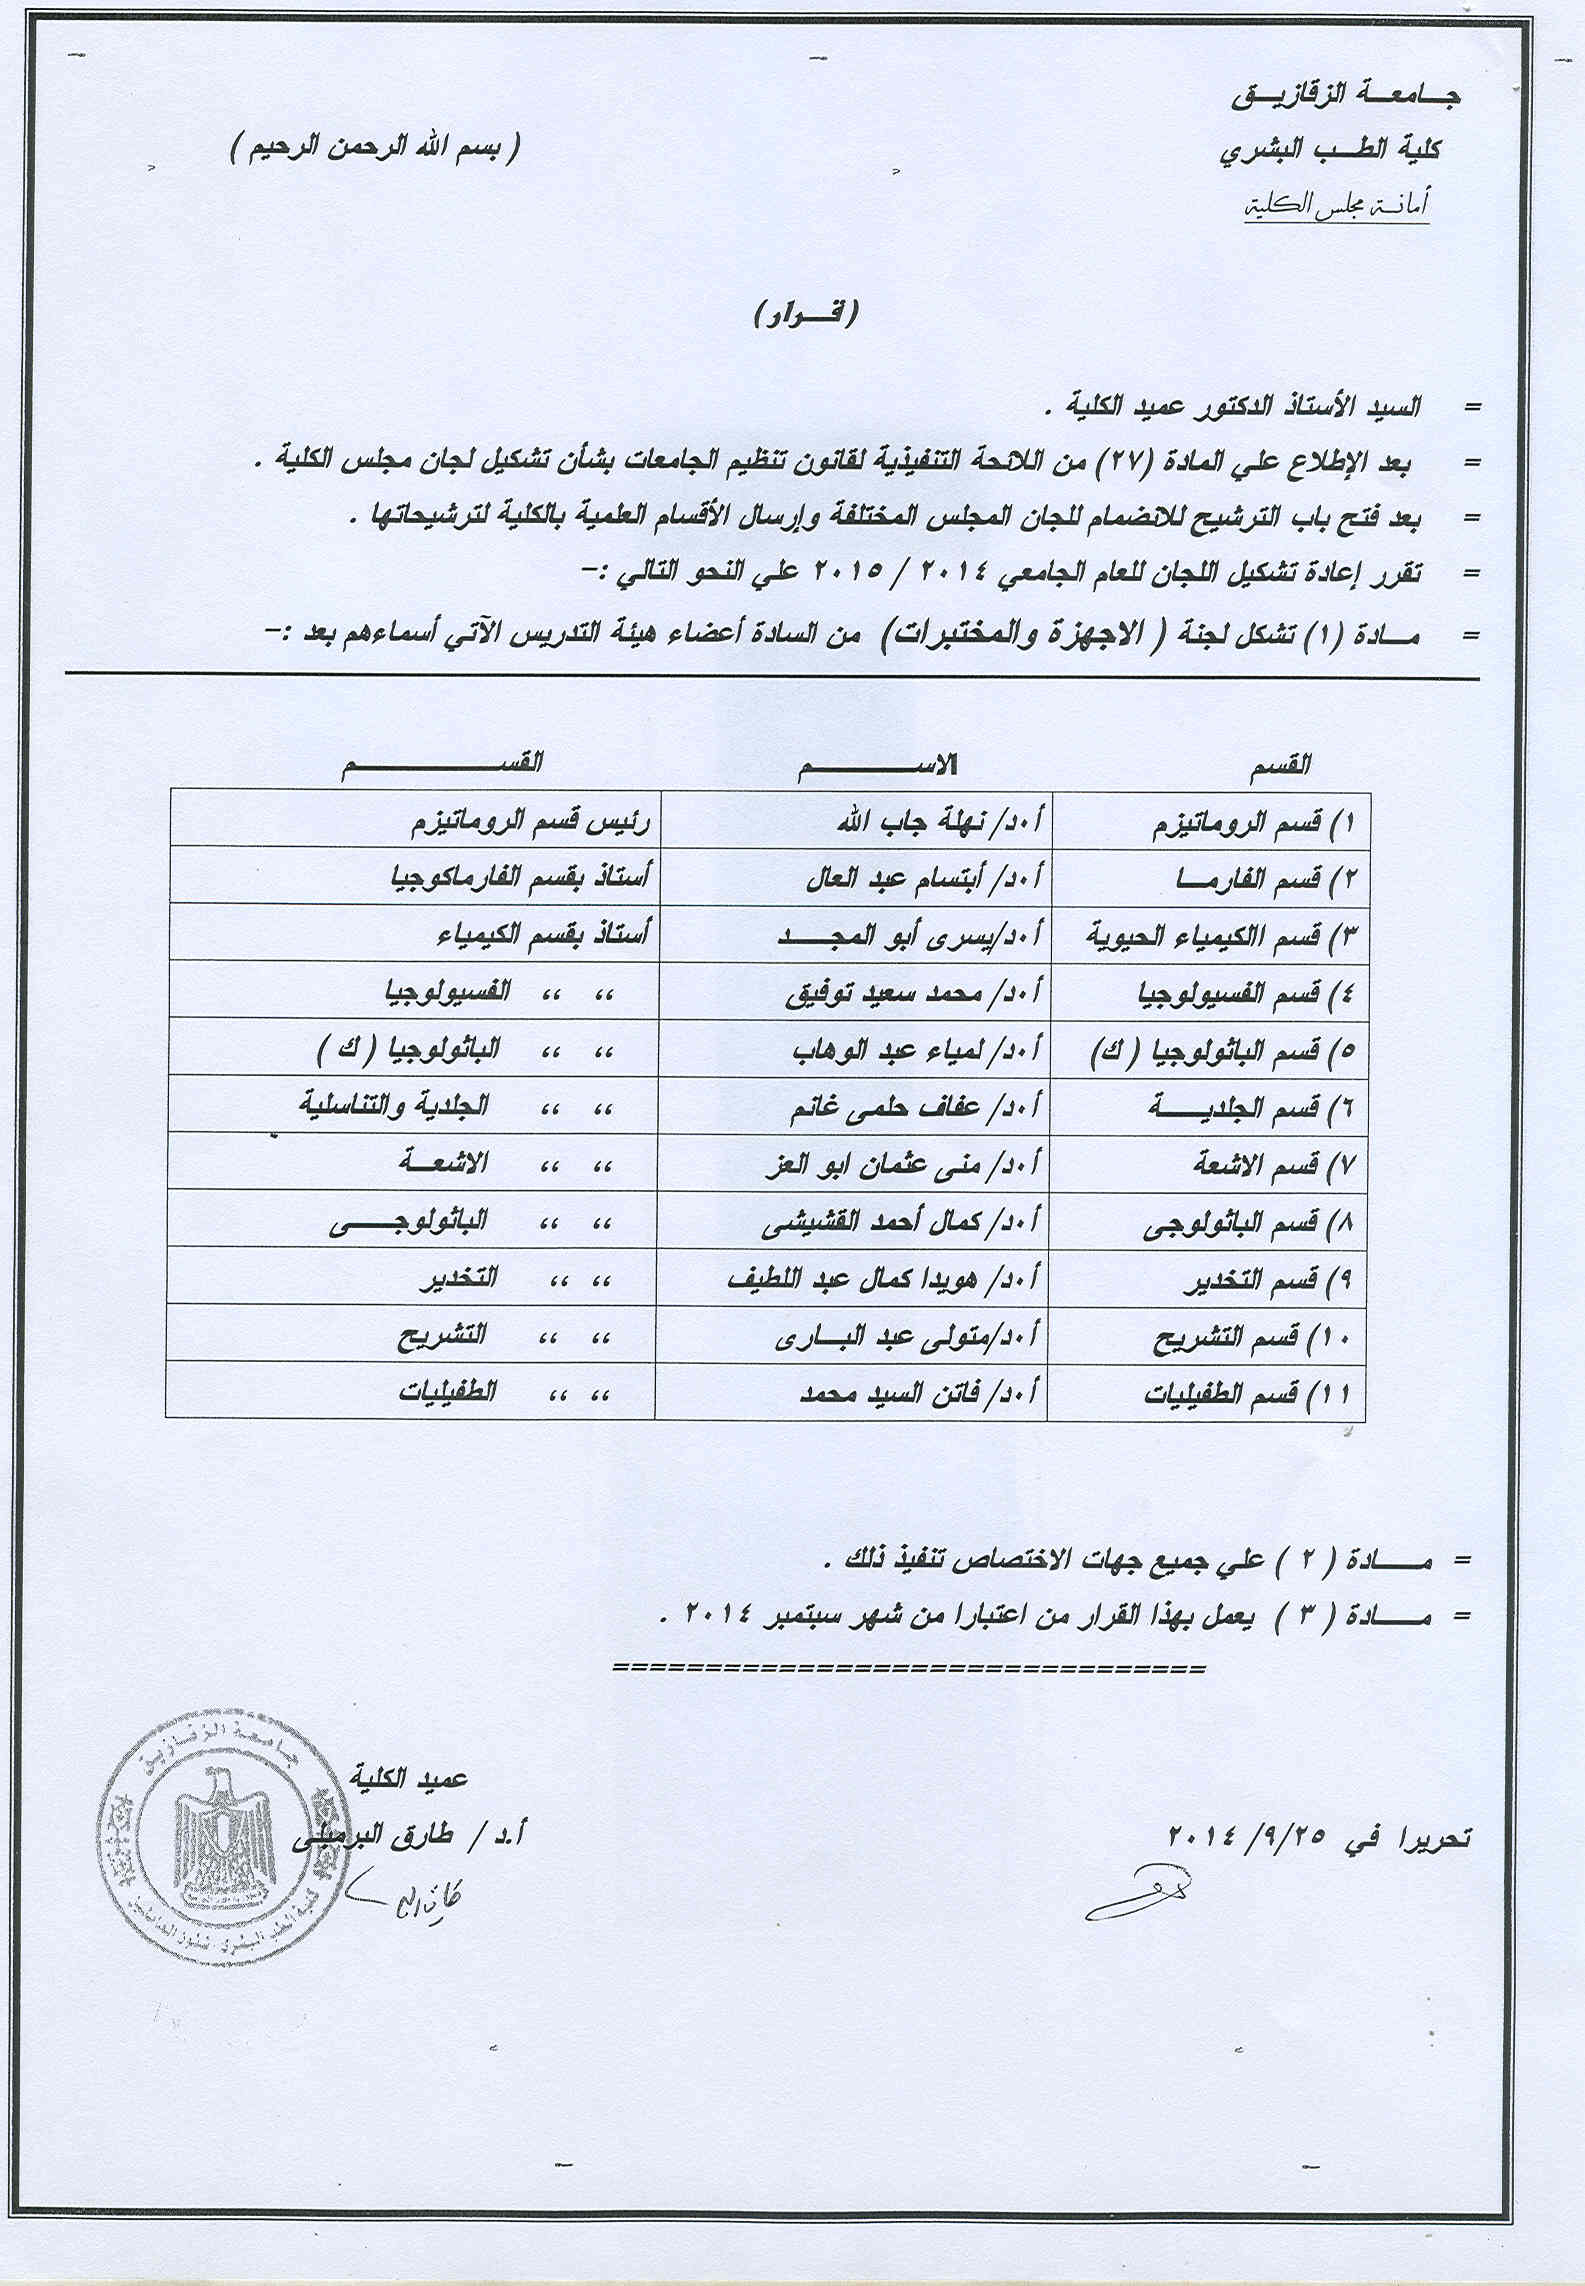 Formation of a committee setups and laboratories for the year 2014-2015